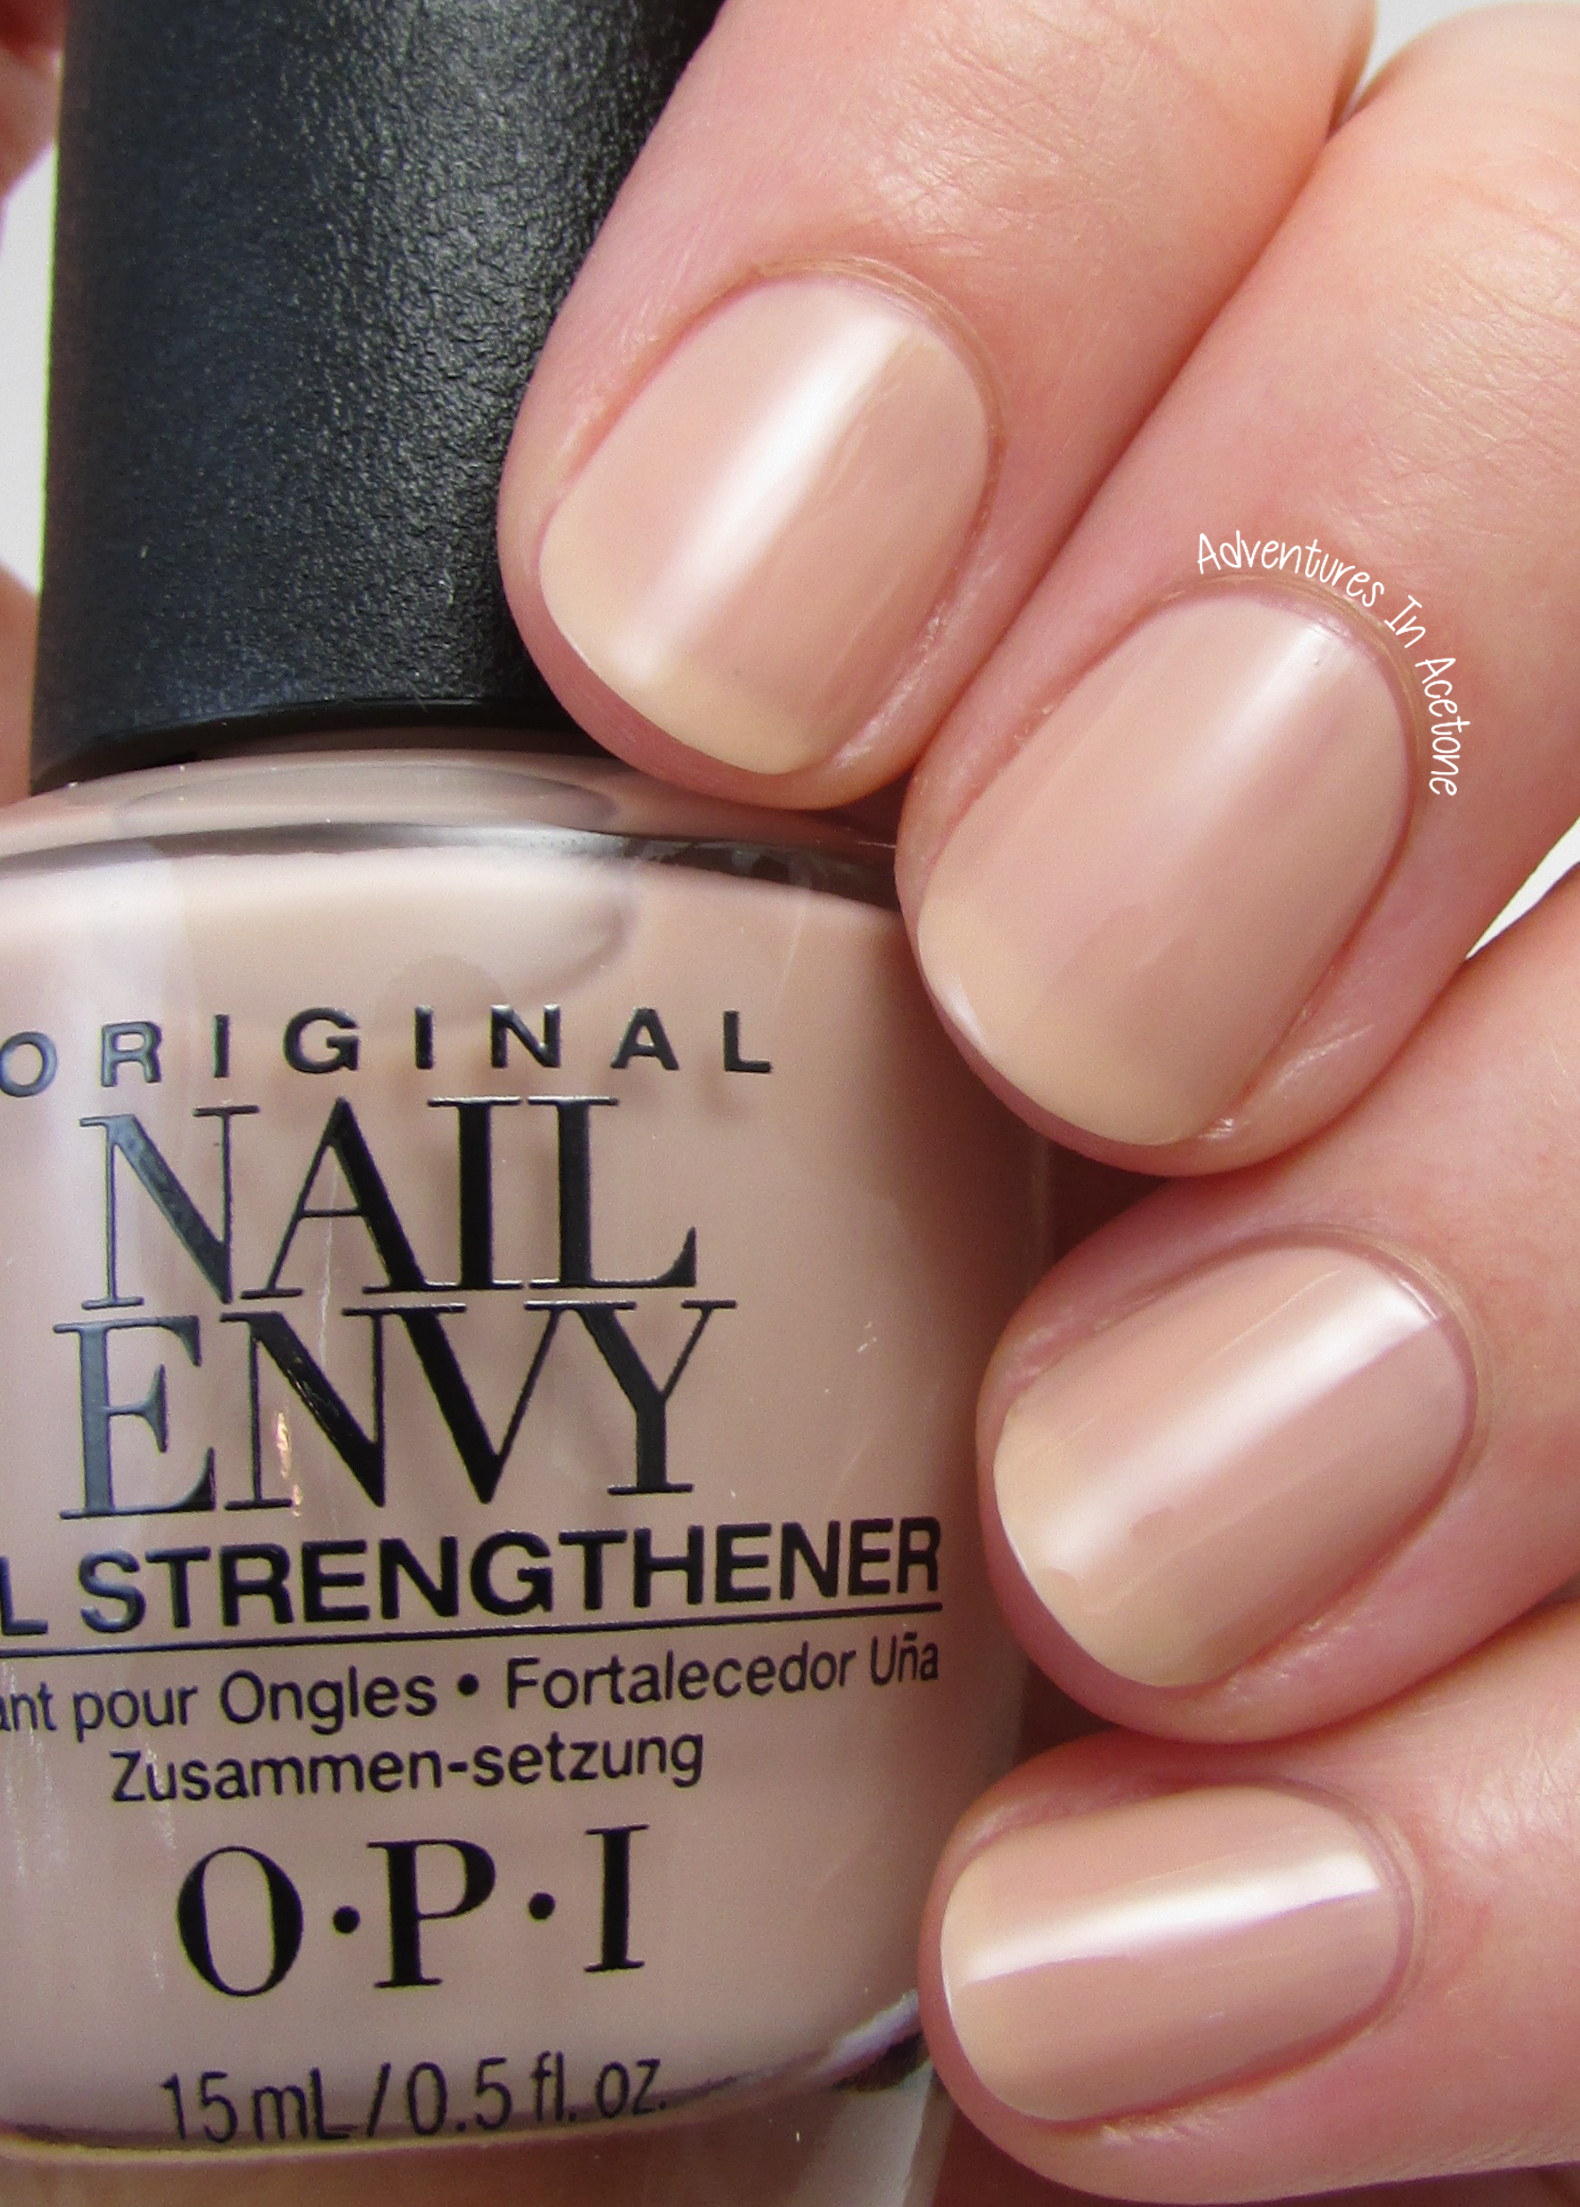 Opi Nail Envy Sensitive And Ling Review Best Designs 2018